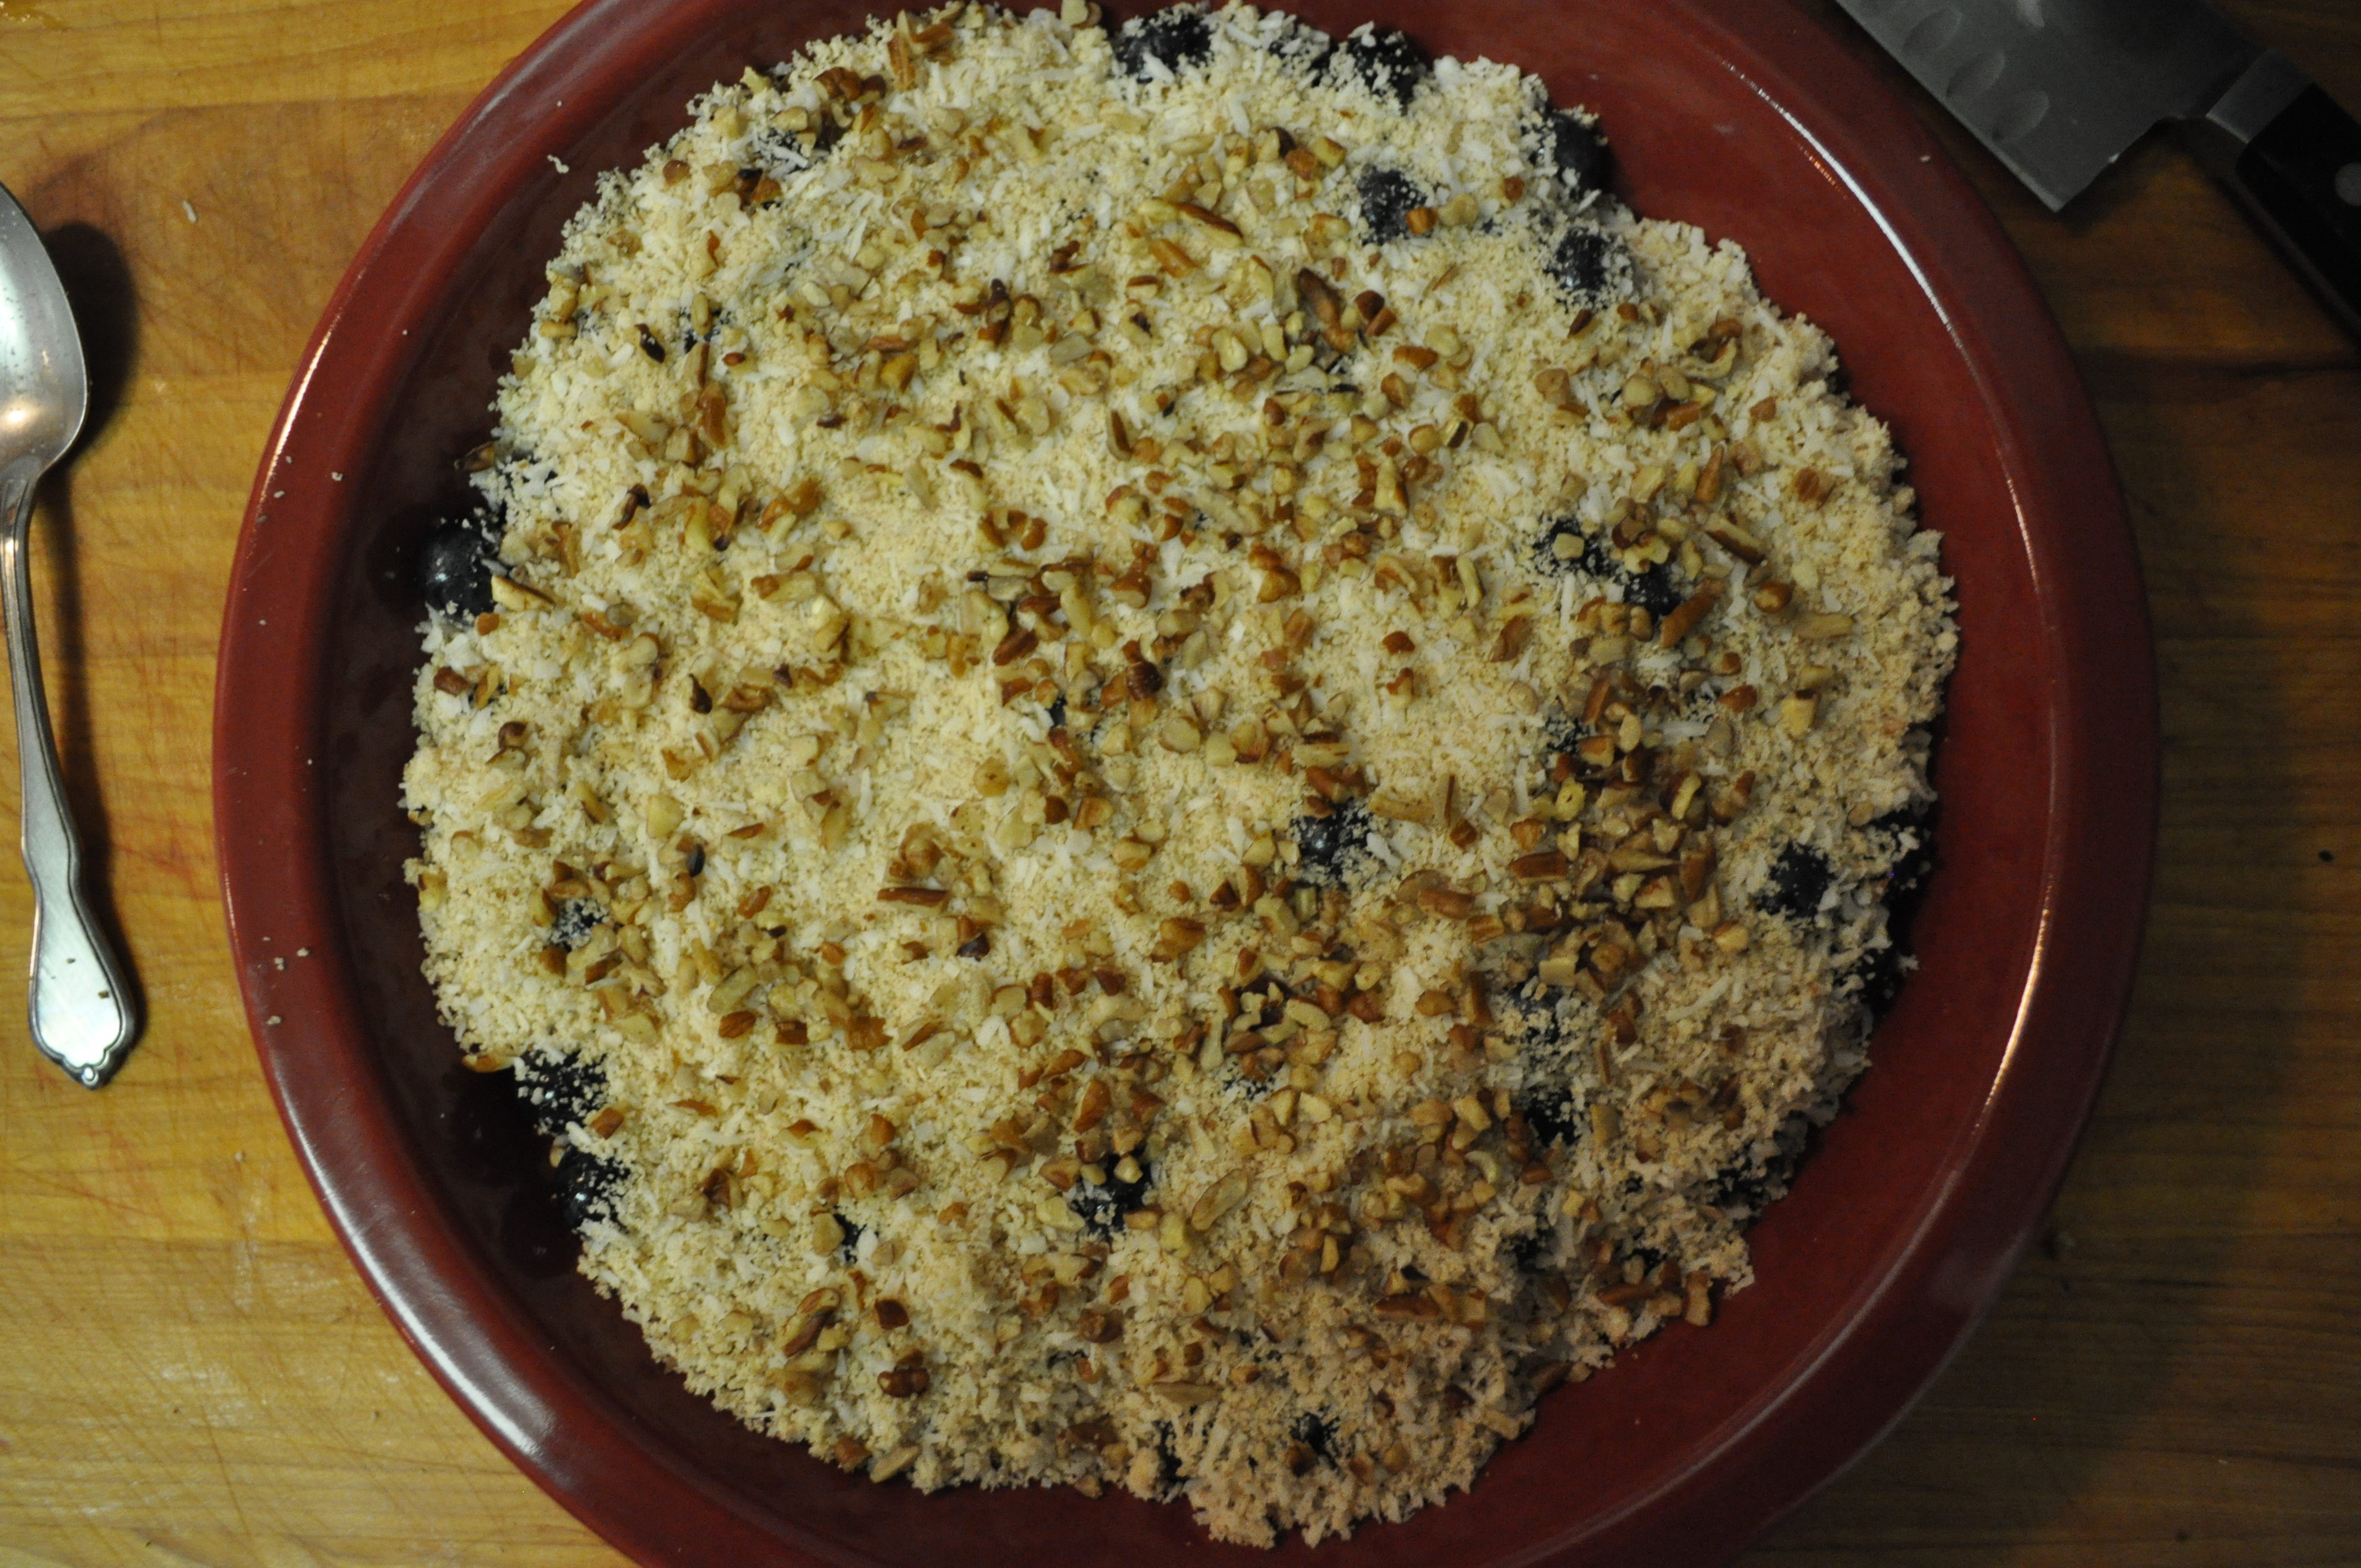 overhead view of a red casserole dish filled with blueberry coconut crumble